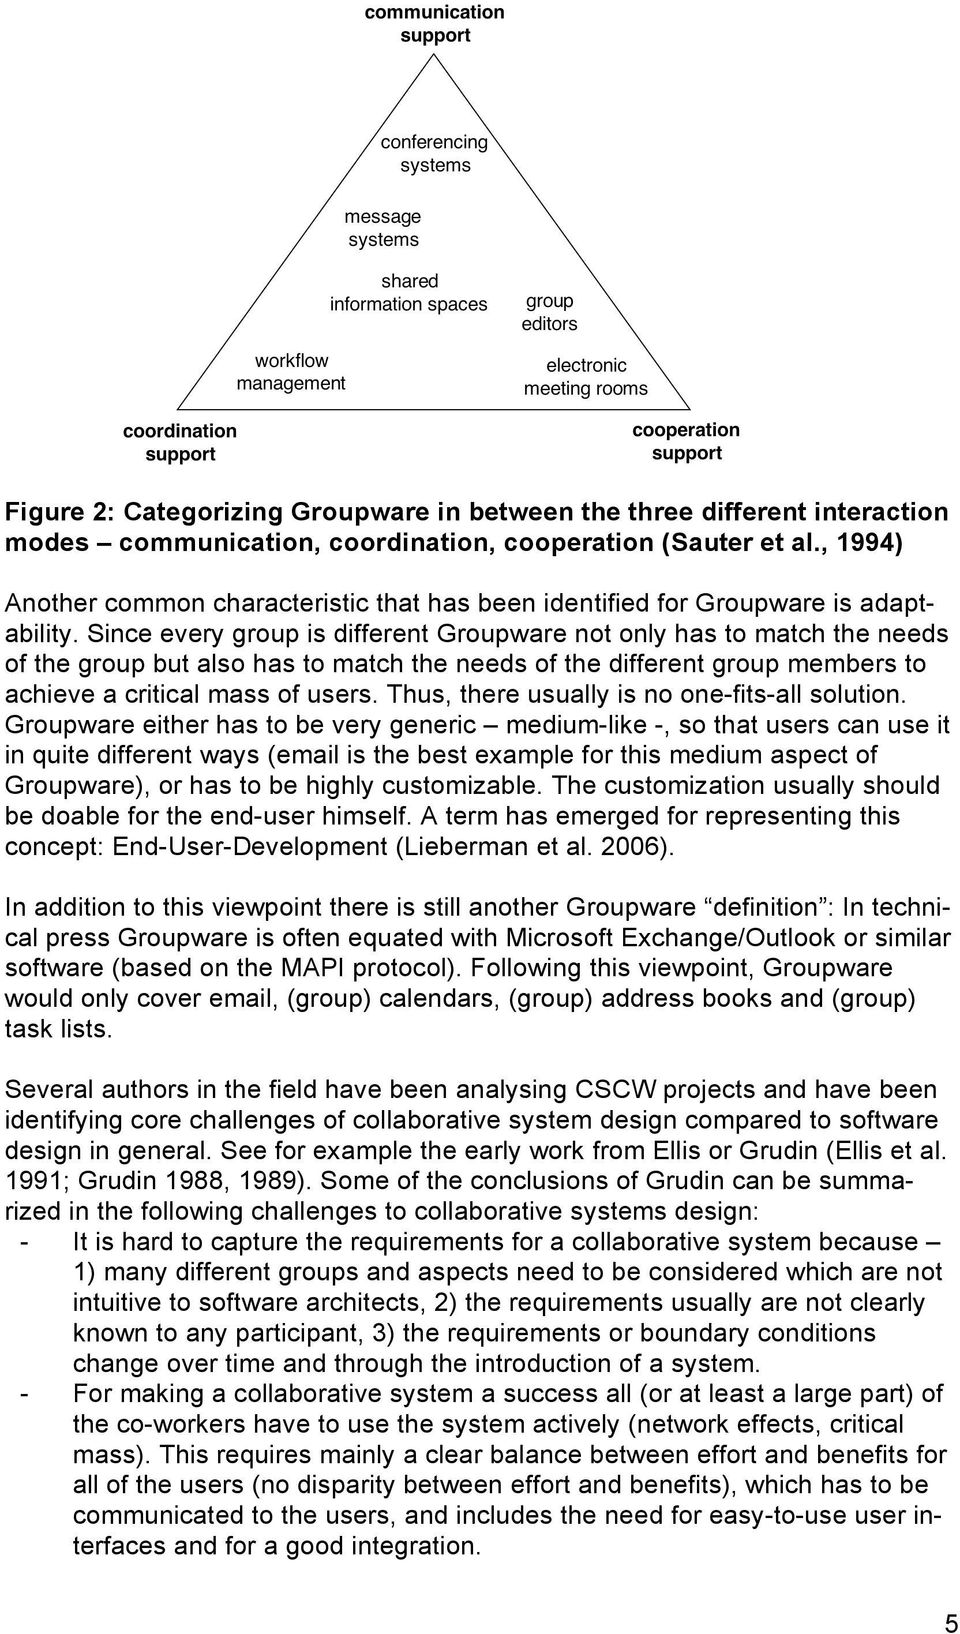 Since every group is different Groupware not only has to match the needs of the group but also has to match the needs of the different group members to achieve a critical mass of users.